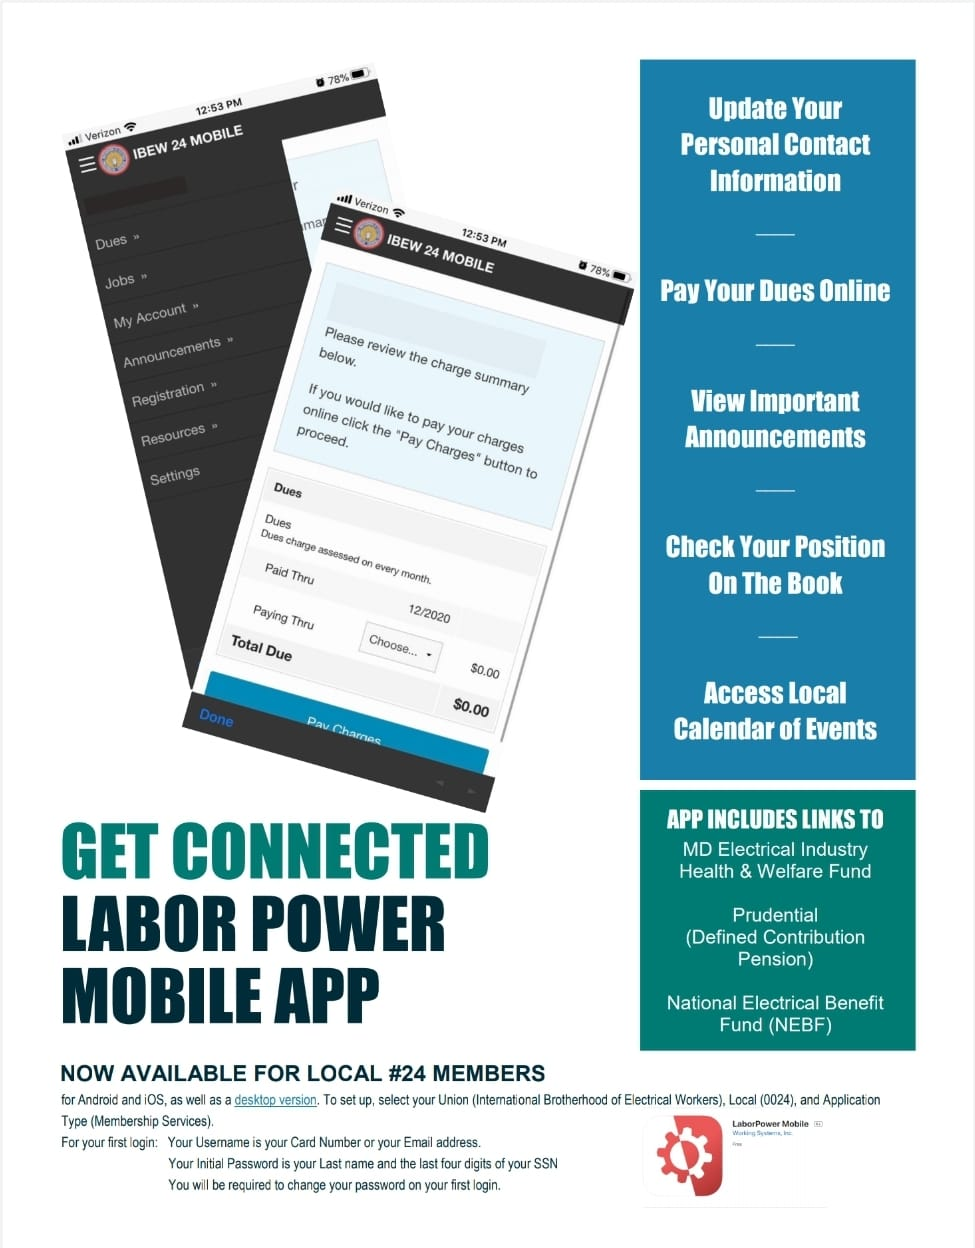 <br /><strong>Make Your Life A Lot Easier With The Local 24 Labor Power Mobile App